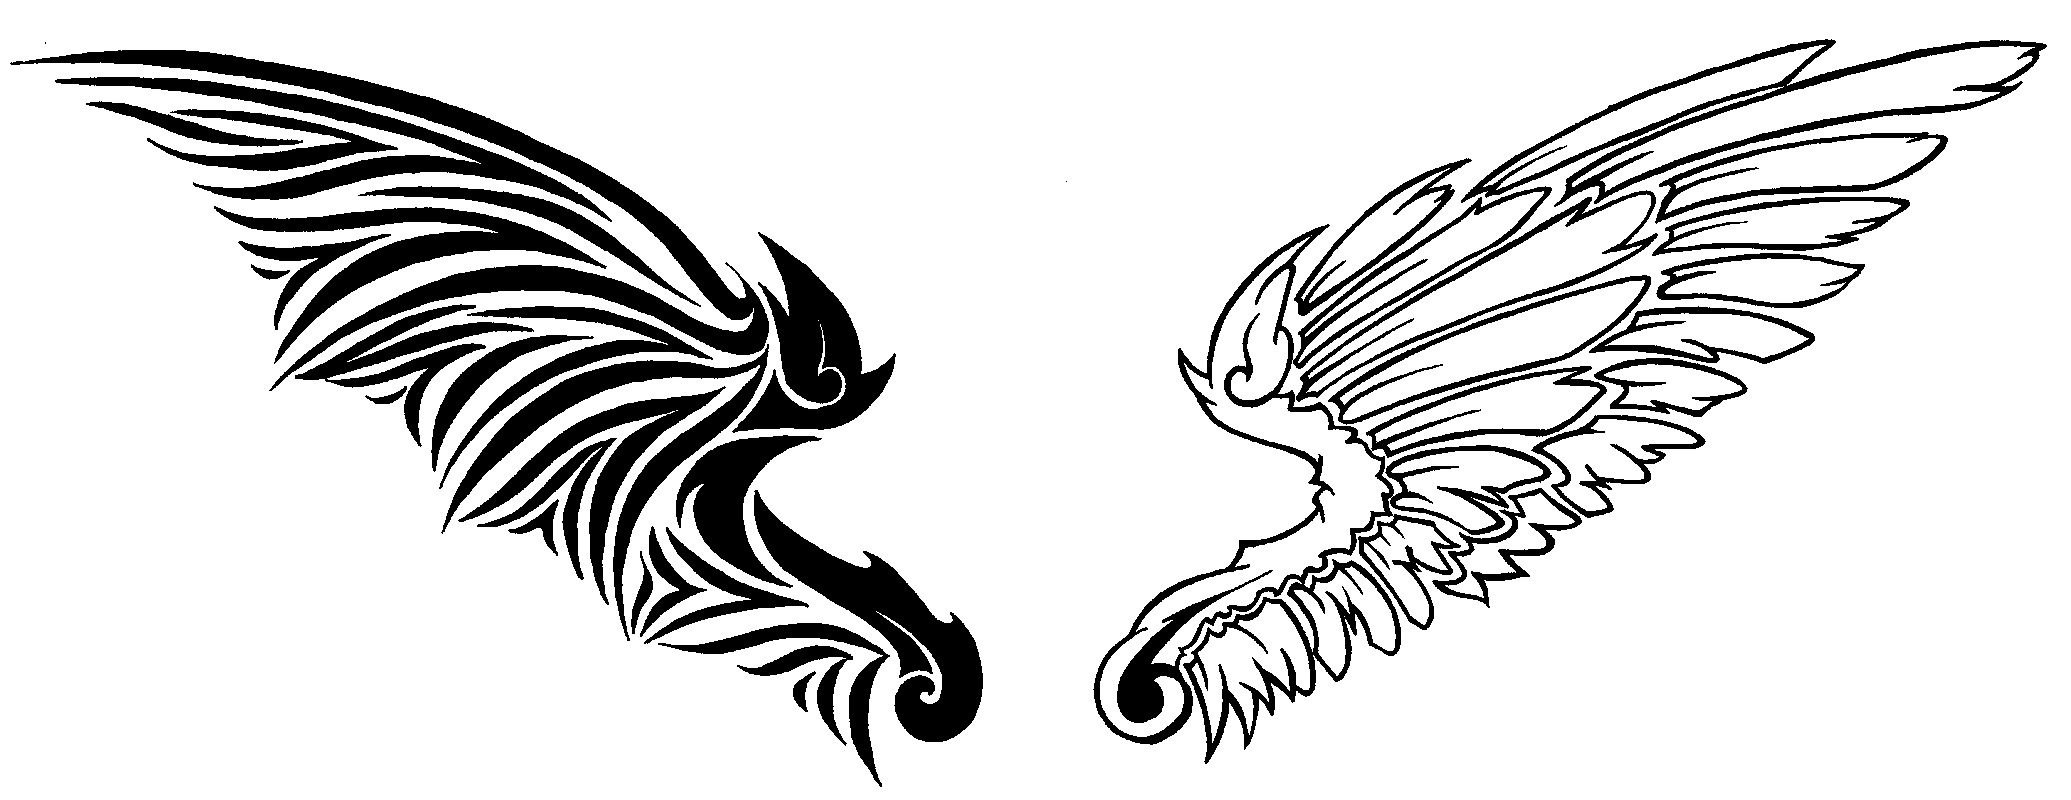 Angel wings with tribal design clipart picture royalty free Free Wings, Download Free Clip Art, Free Clip Art on Clipart Library picture royalty free